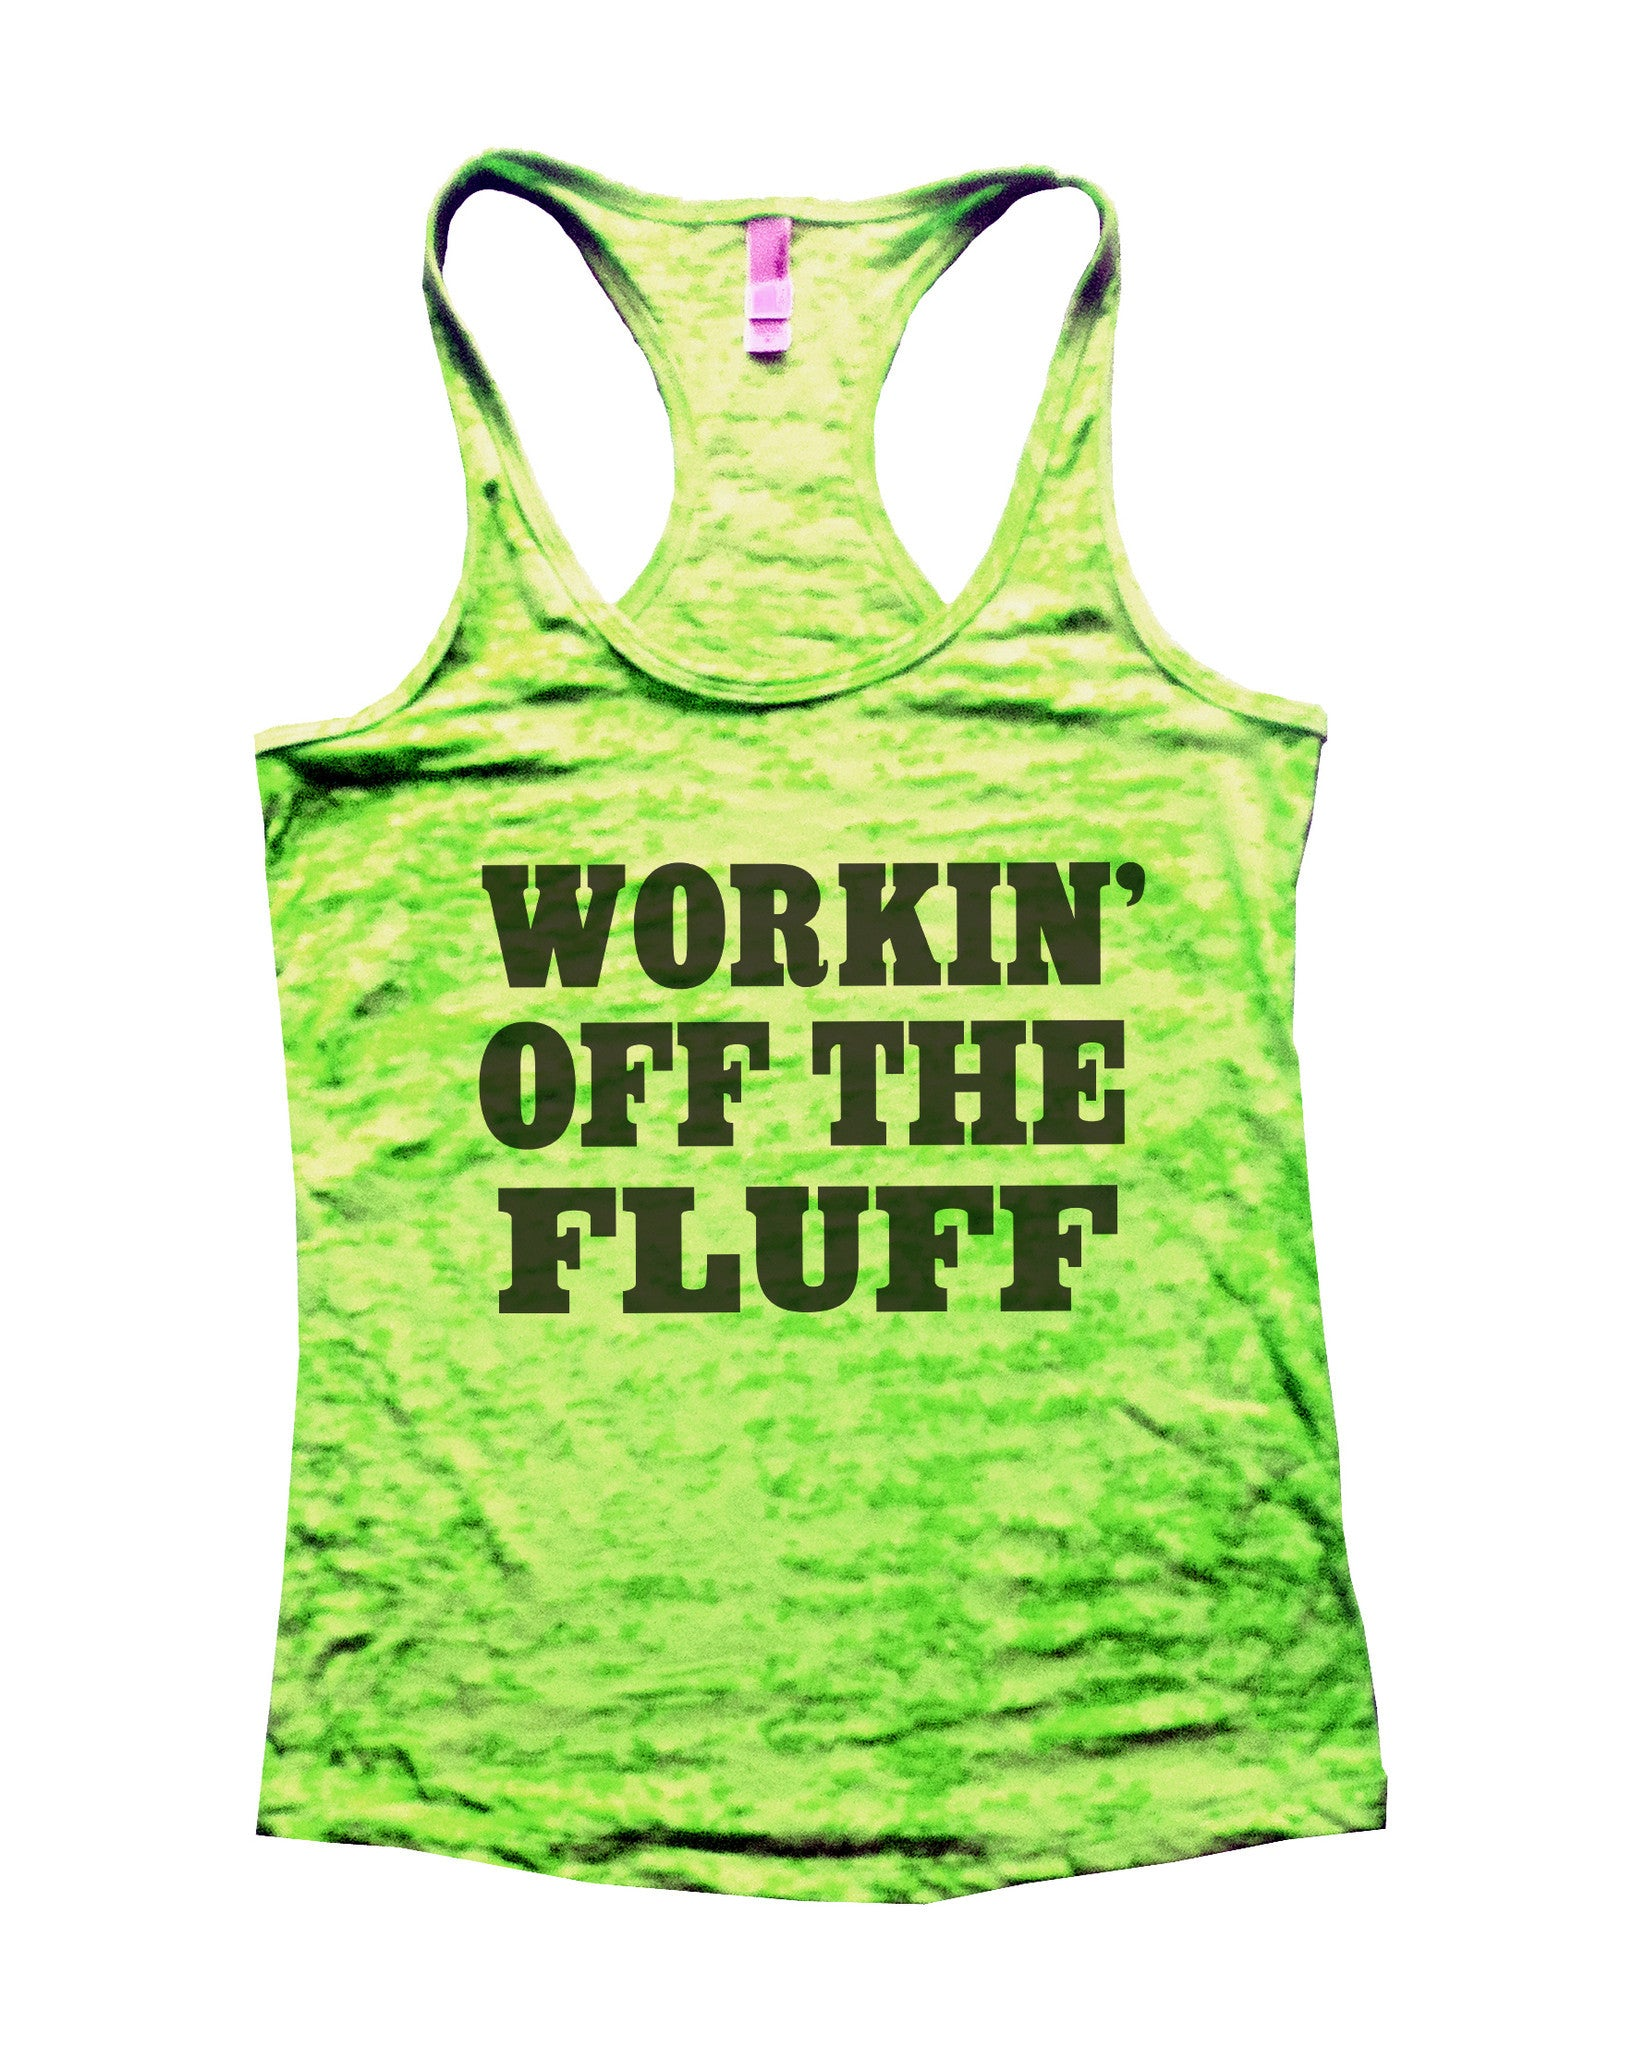 Working Off The Fluff Burnout Tank Top By BurnoutTankTops.com - 688 - Funny Shirts Tank Tops Burnouts and Triblends  - 1